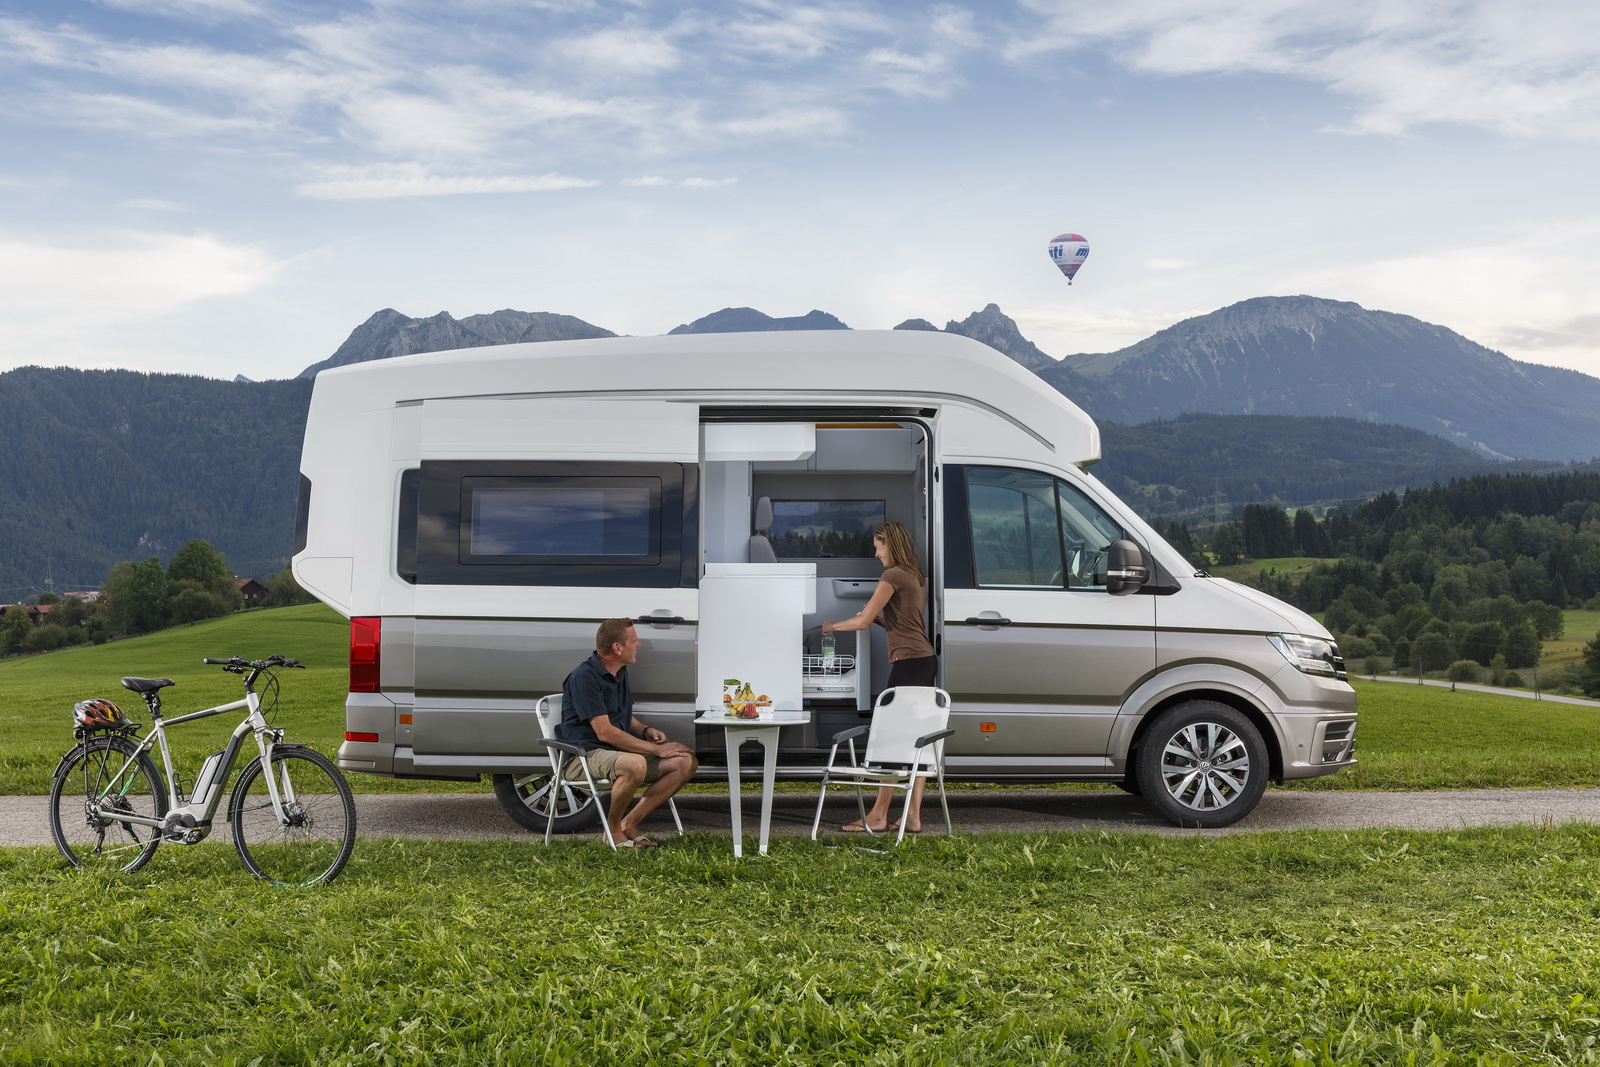 Rv Mercedes >> VW California XXL Concept Is Big Camper Van For Globetrotters [41 Pics] | Carscoops